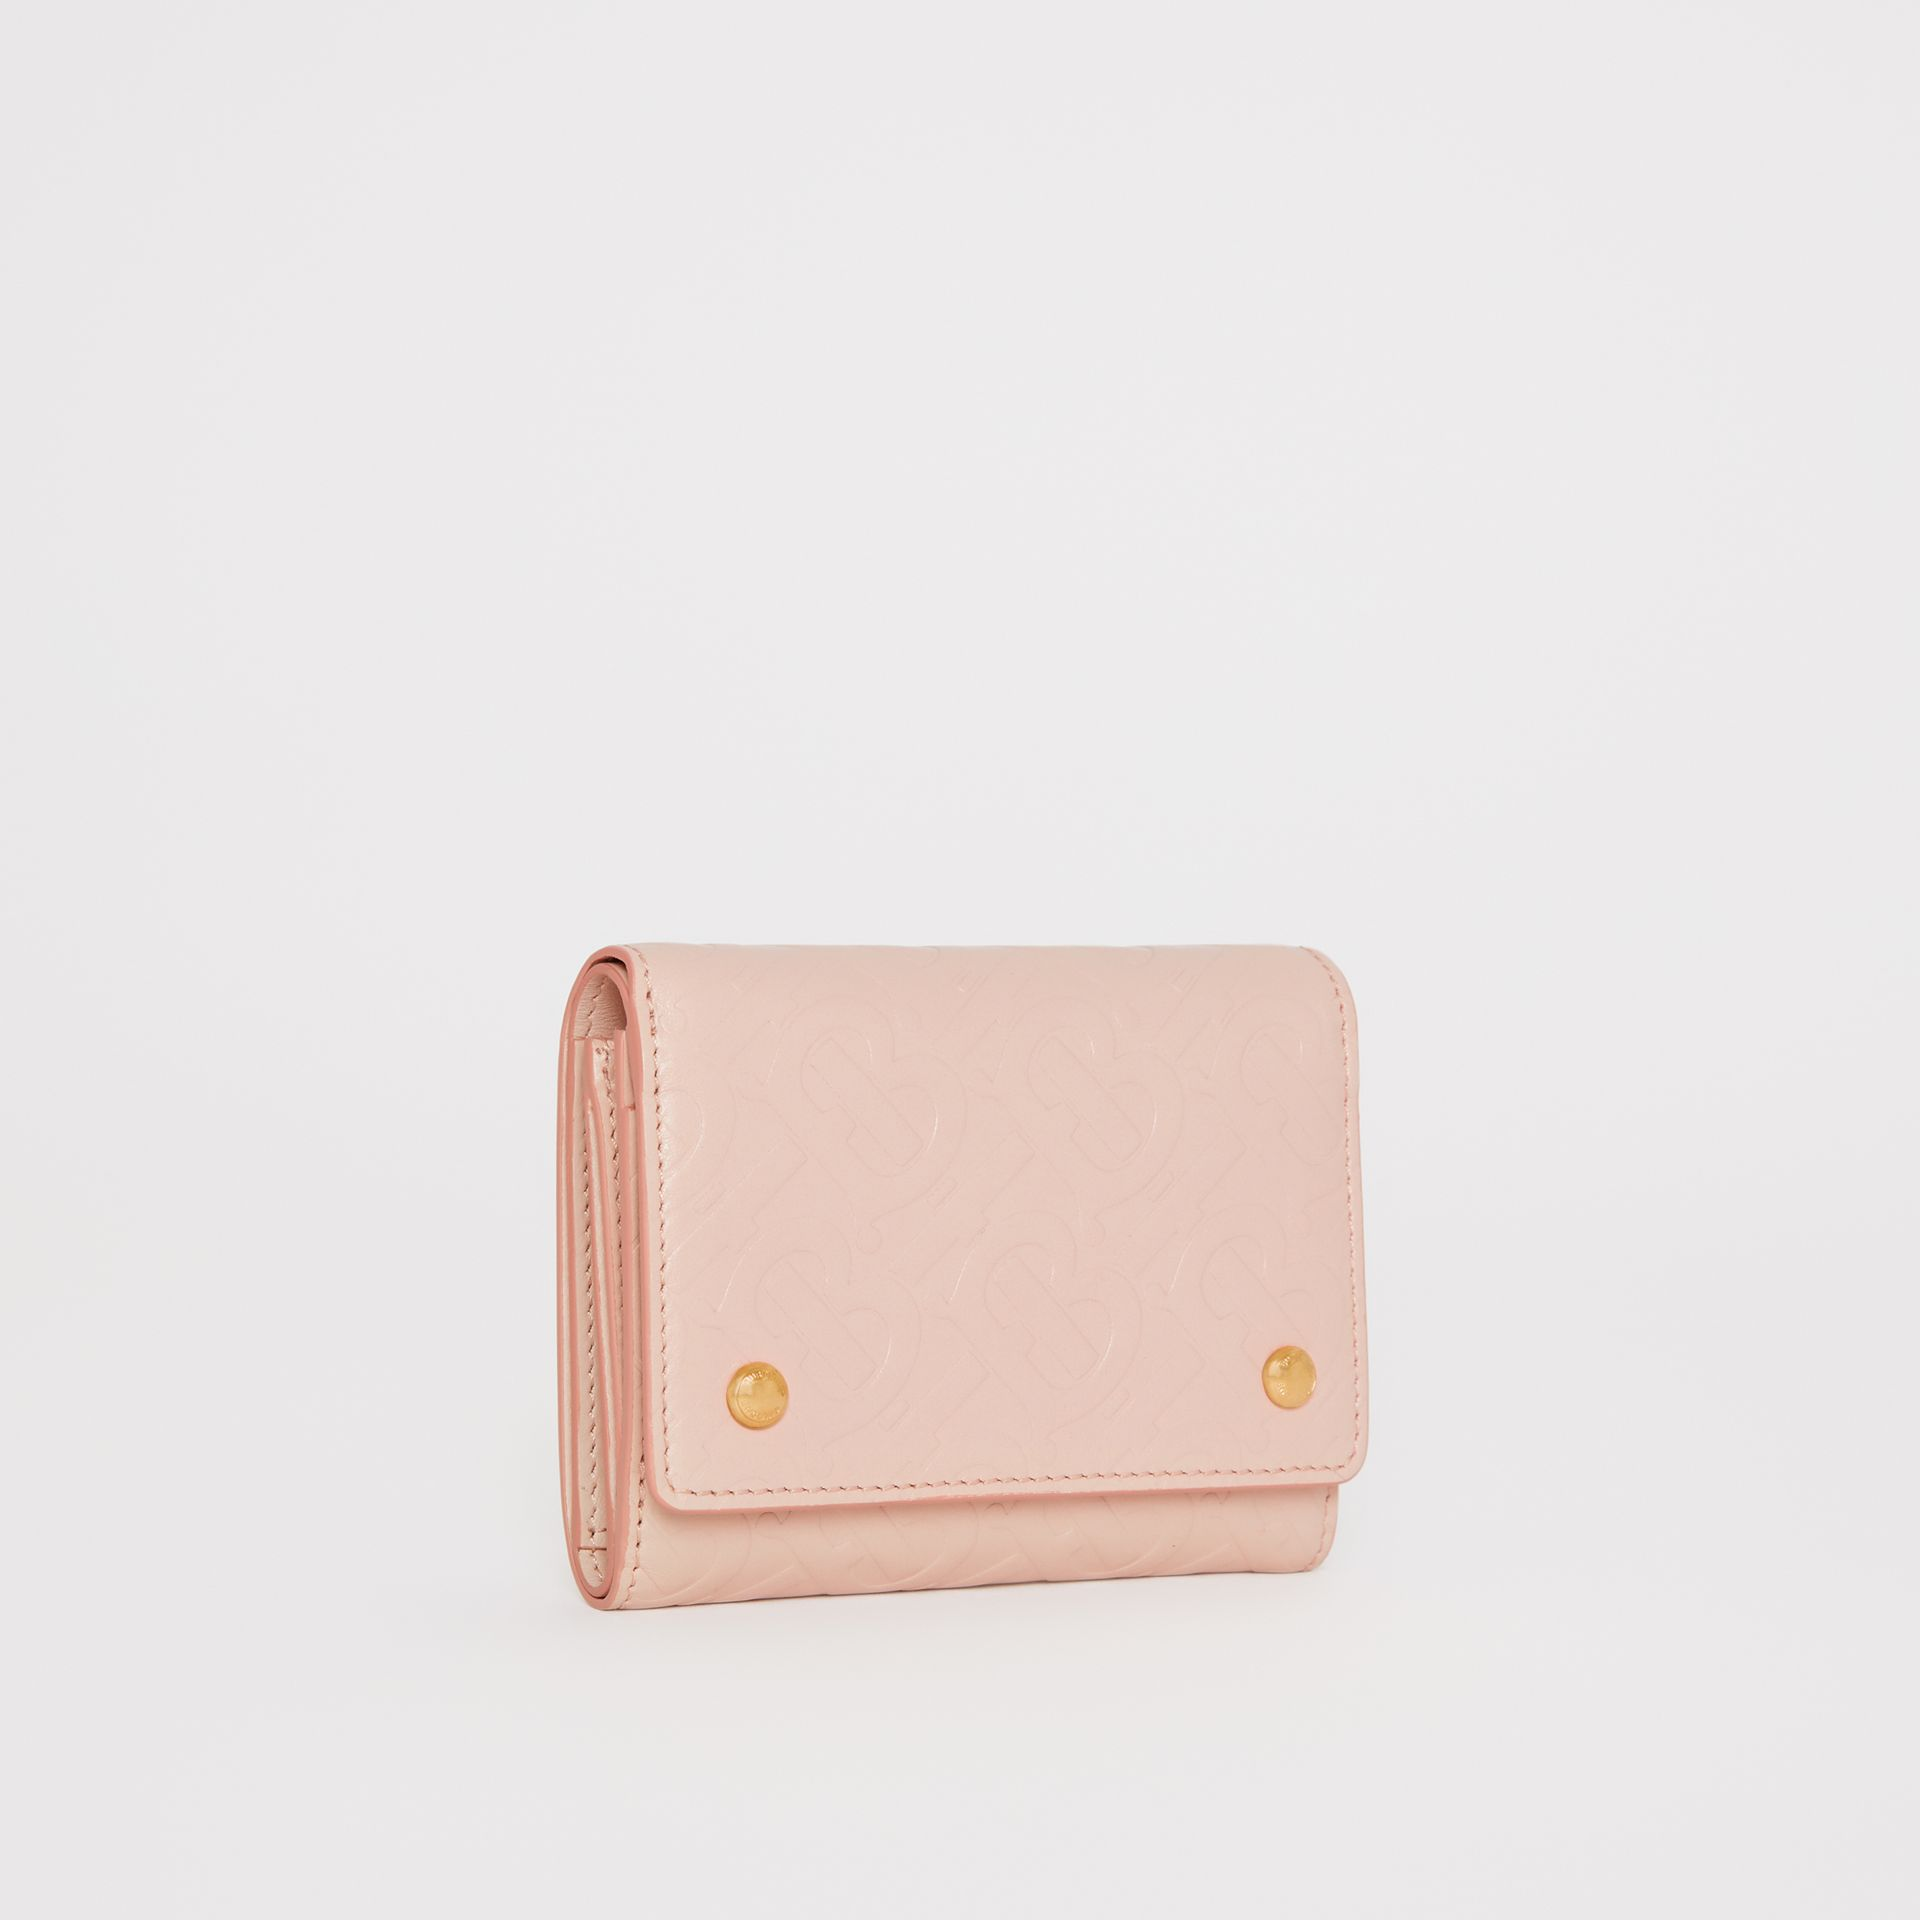 Small Monogram Leather Folding Wallet in Rose Beige | Burberry Australia - gallery image 3